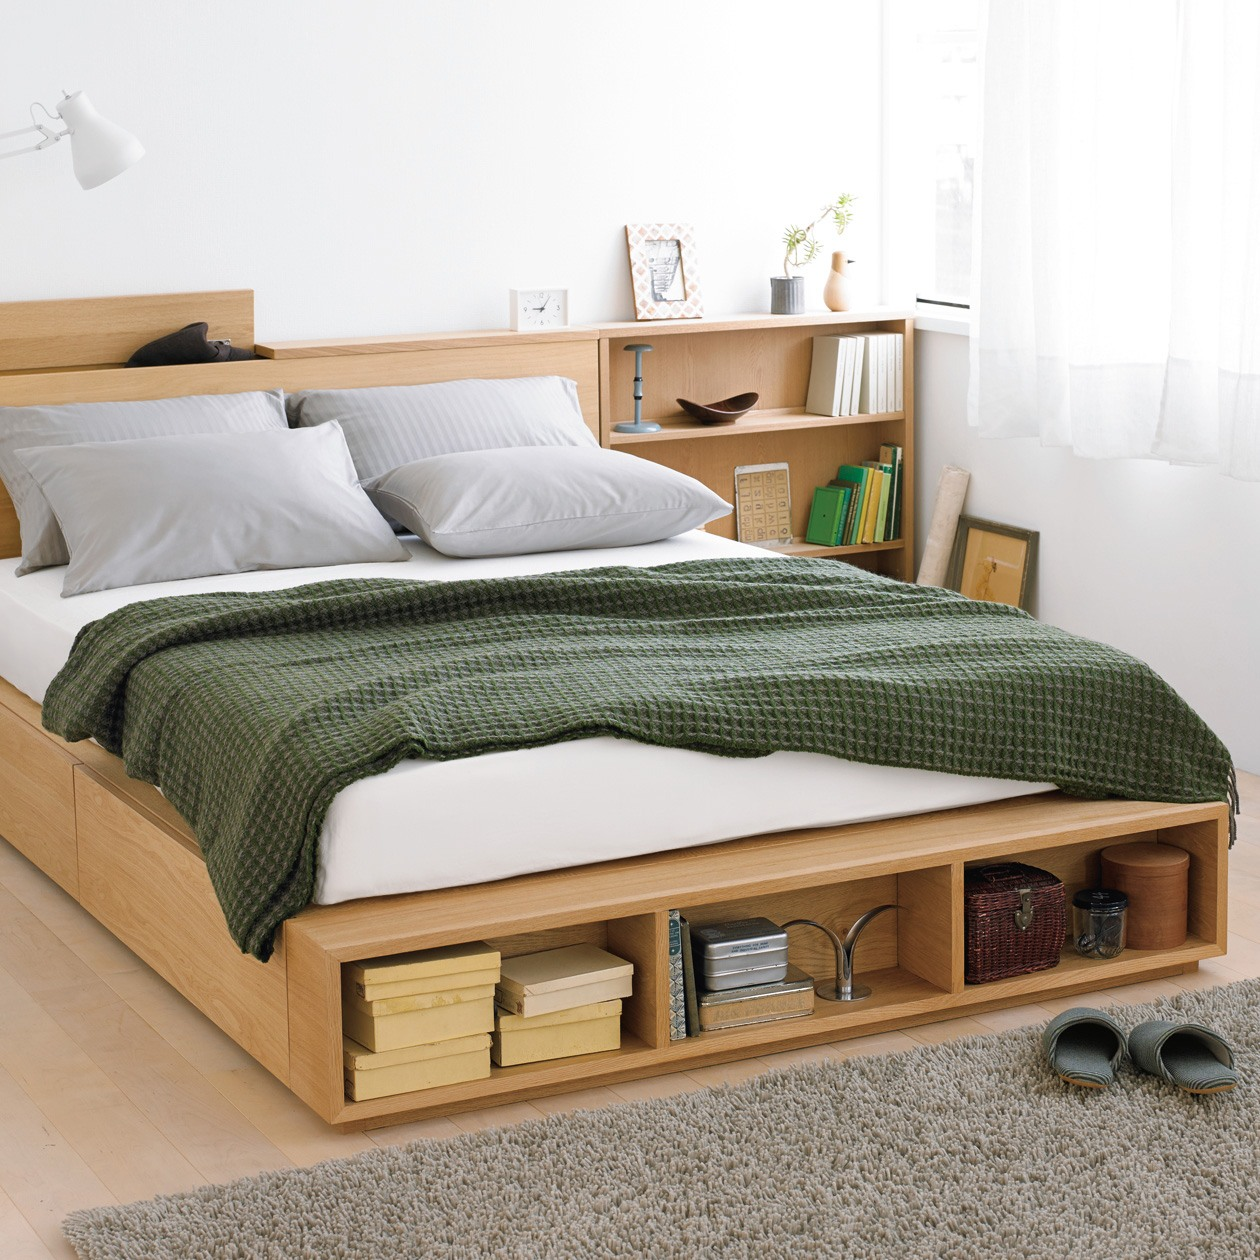 Picture of: Easy Diy Platform Bed with Storage Plans